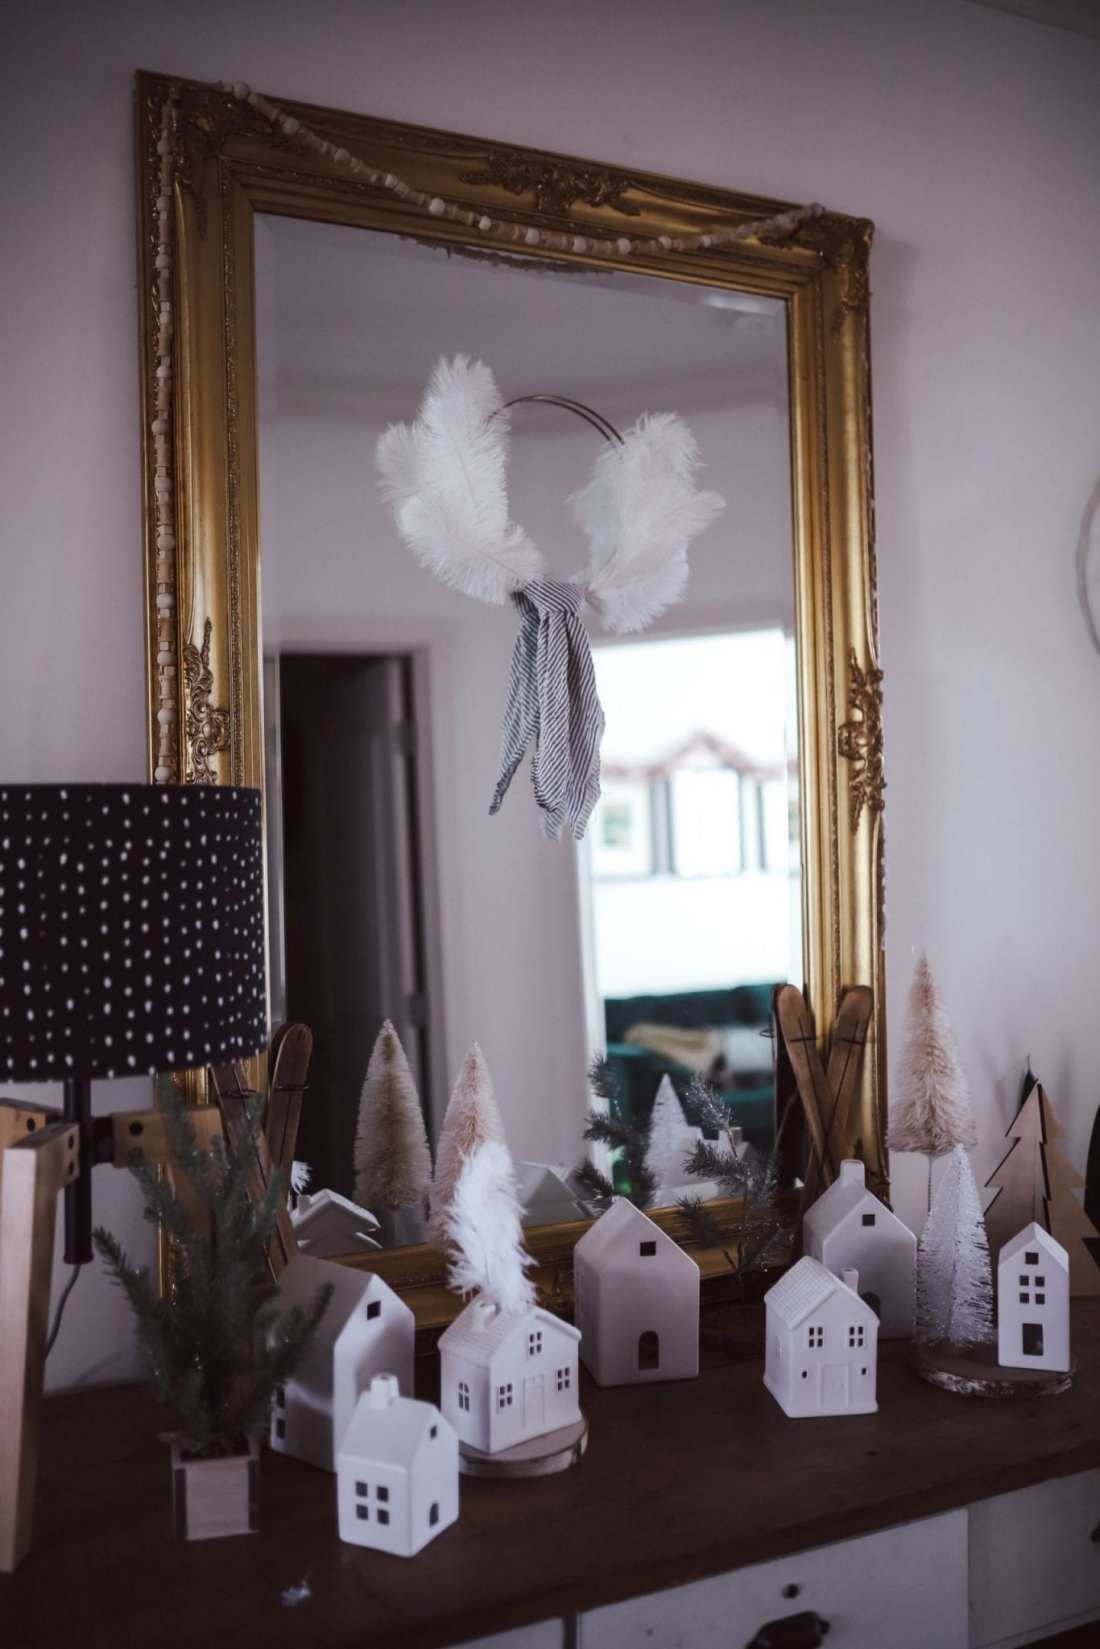 5 Ways to Decorate with Feathers for Boho Christmas Decor by popular Nashville lifestyle blog, Modern Day Moguls: image of a dresser and mirror decorated with Oriental Trading Feathers and Wooden Beads.